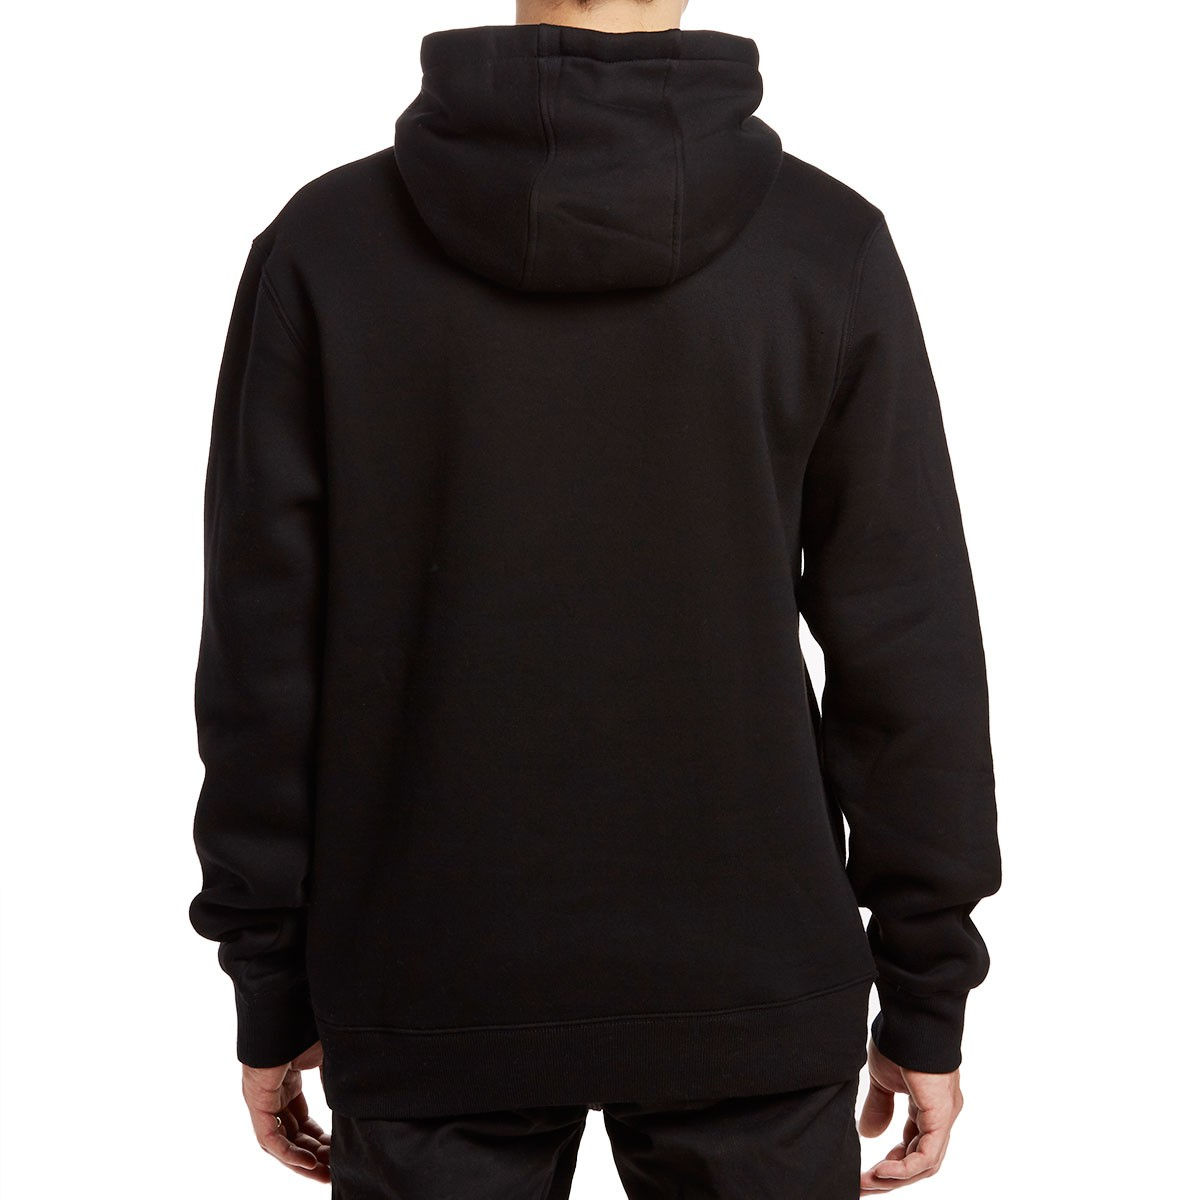 The Quiet Life Bauhaus Skull Pullover Hoodie Black